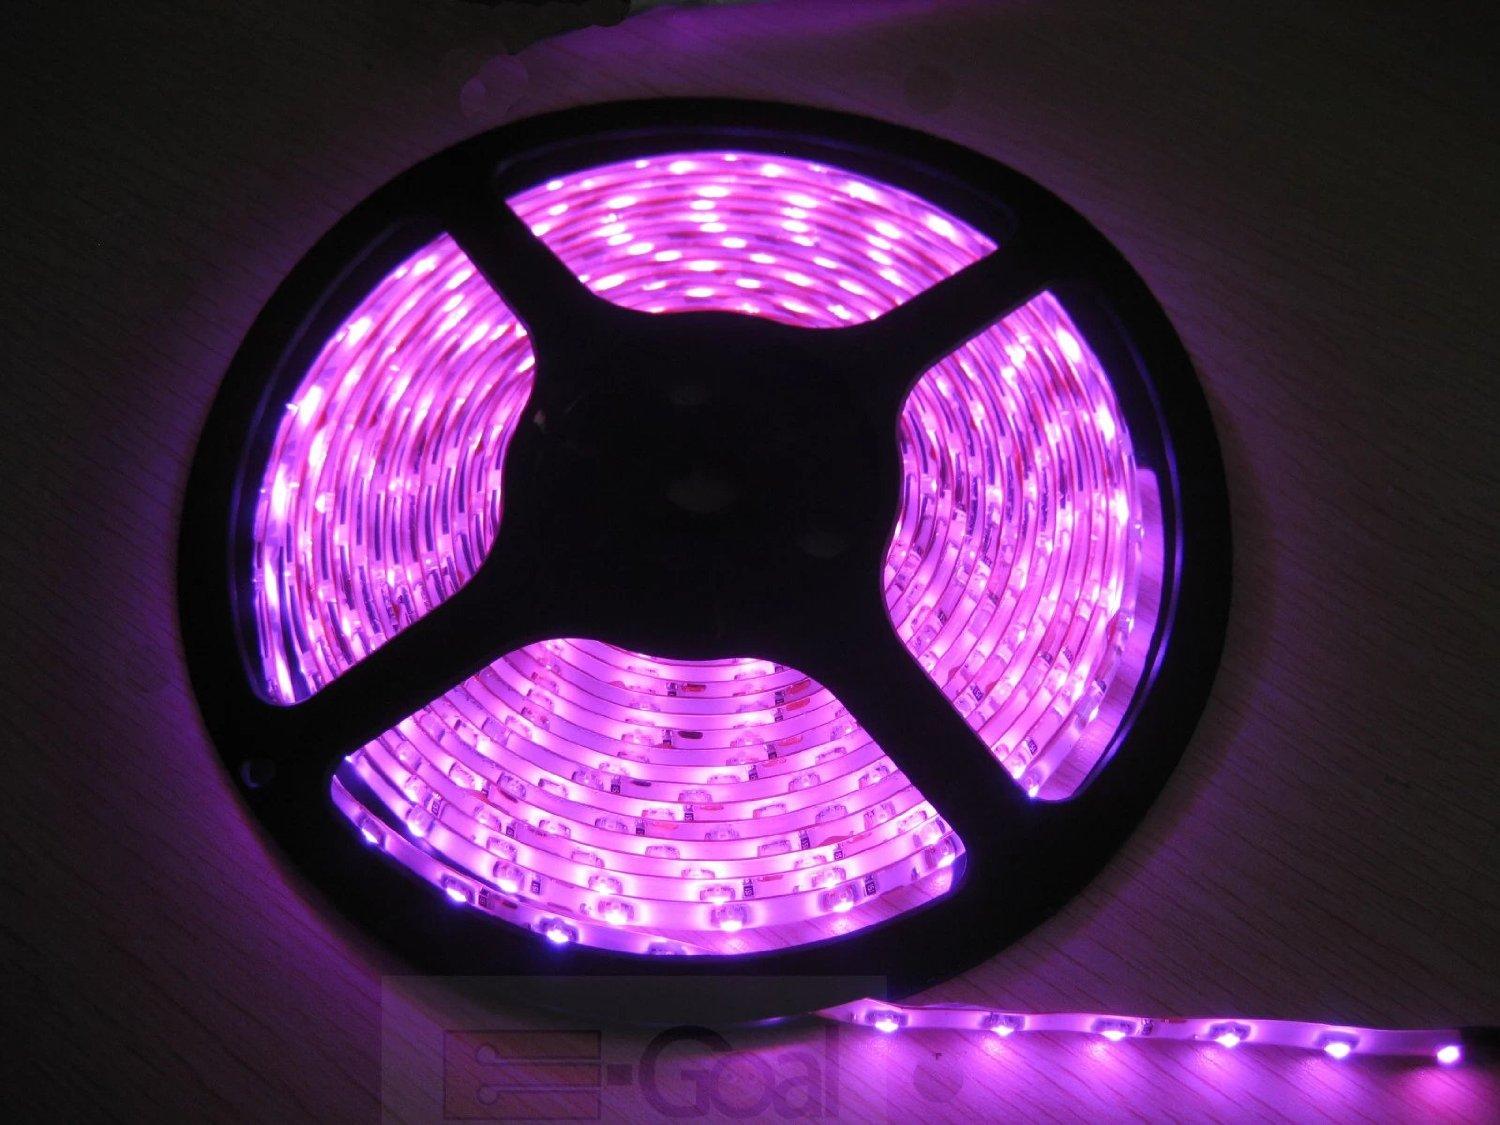 led strip light 5m for sale in jamaica. Black Bedroom Furniture Sets. Home Design Ideas